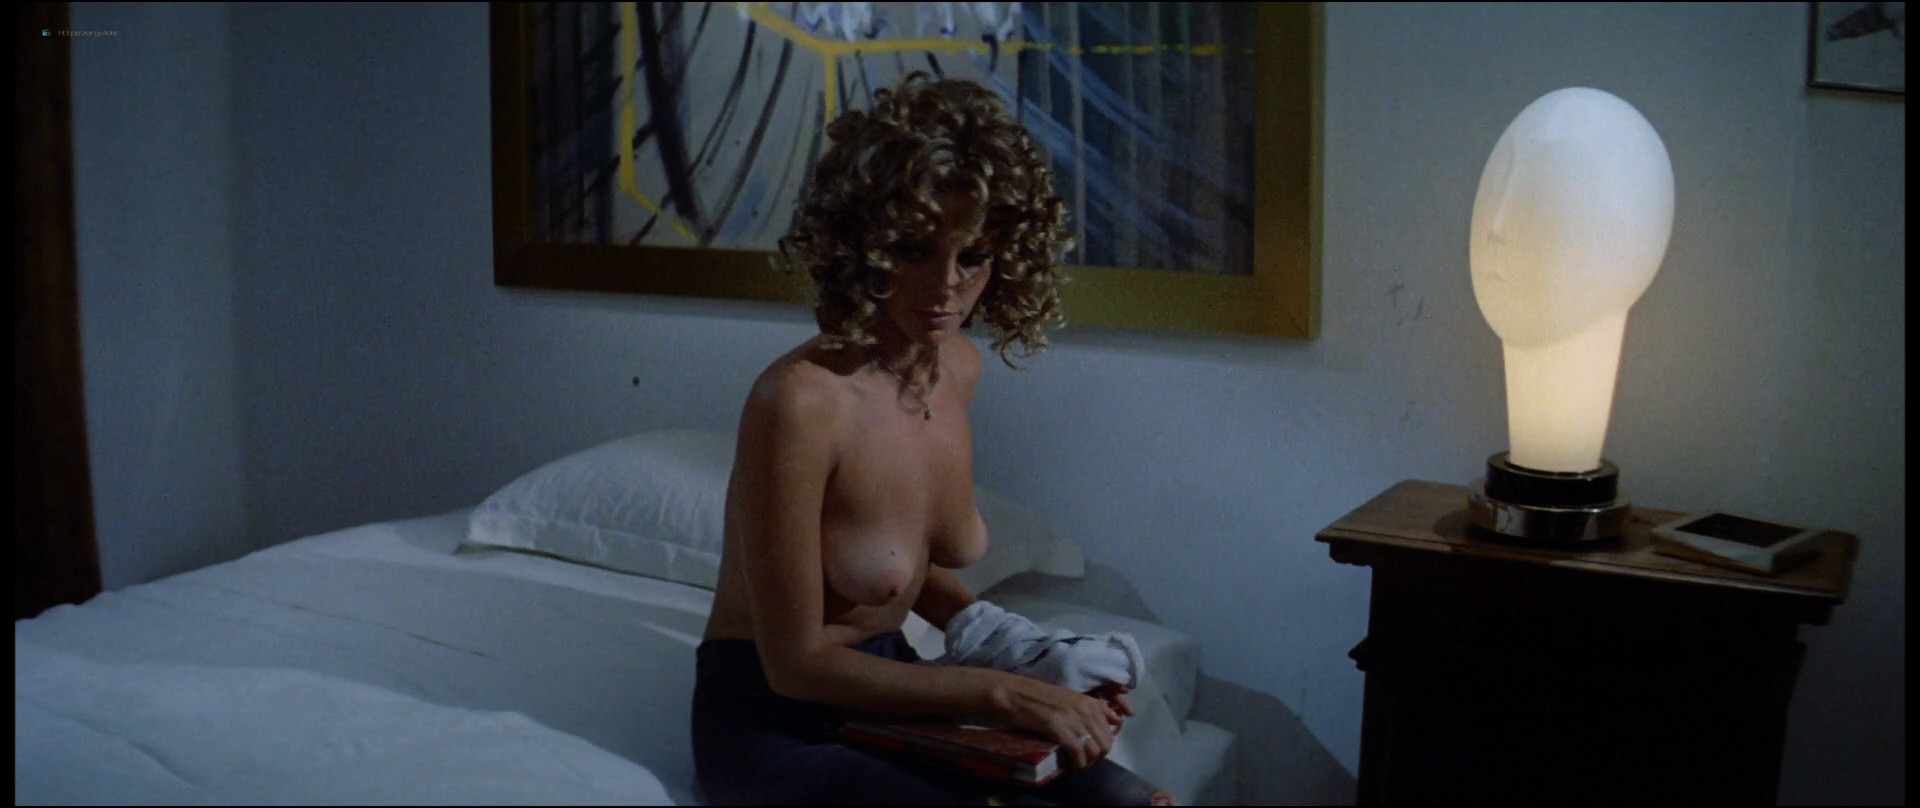 Sydne Rome nude full frontal Renate Langer, Birgitta Nilsson nude too - What? (IT-1972) 1080p BluRay (15)